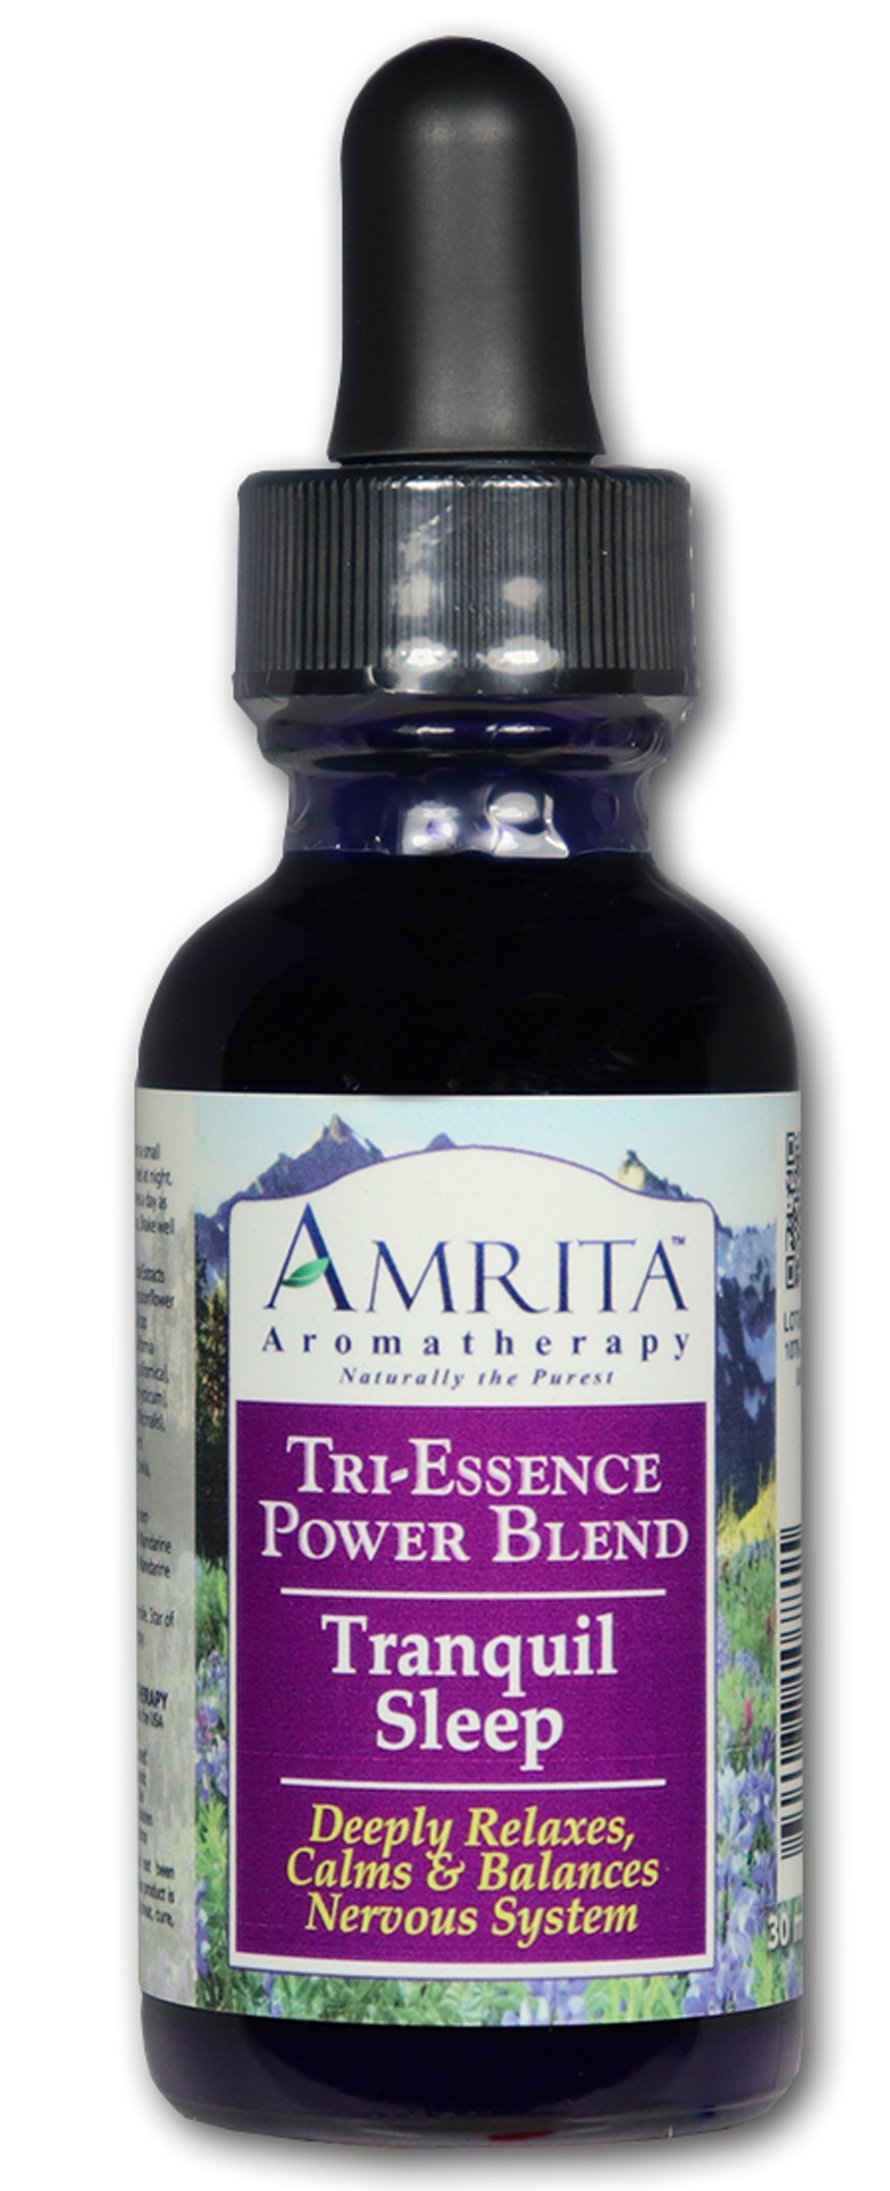 Tranquil Sleep Tri-Essence Power Blend; Blended With All Natural Herbal Extracts, FLower Essences & Essential Oils of Sweet Marjoram, Red Mandarin & Mandarin Petitgrain - SIZE: 240ML ( 8 FL. OZ)